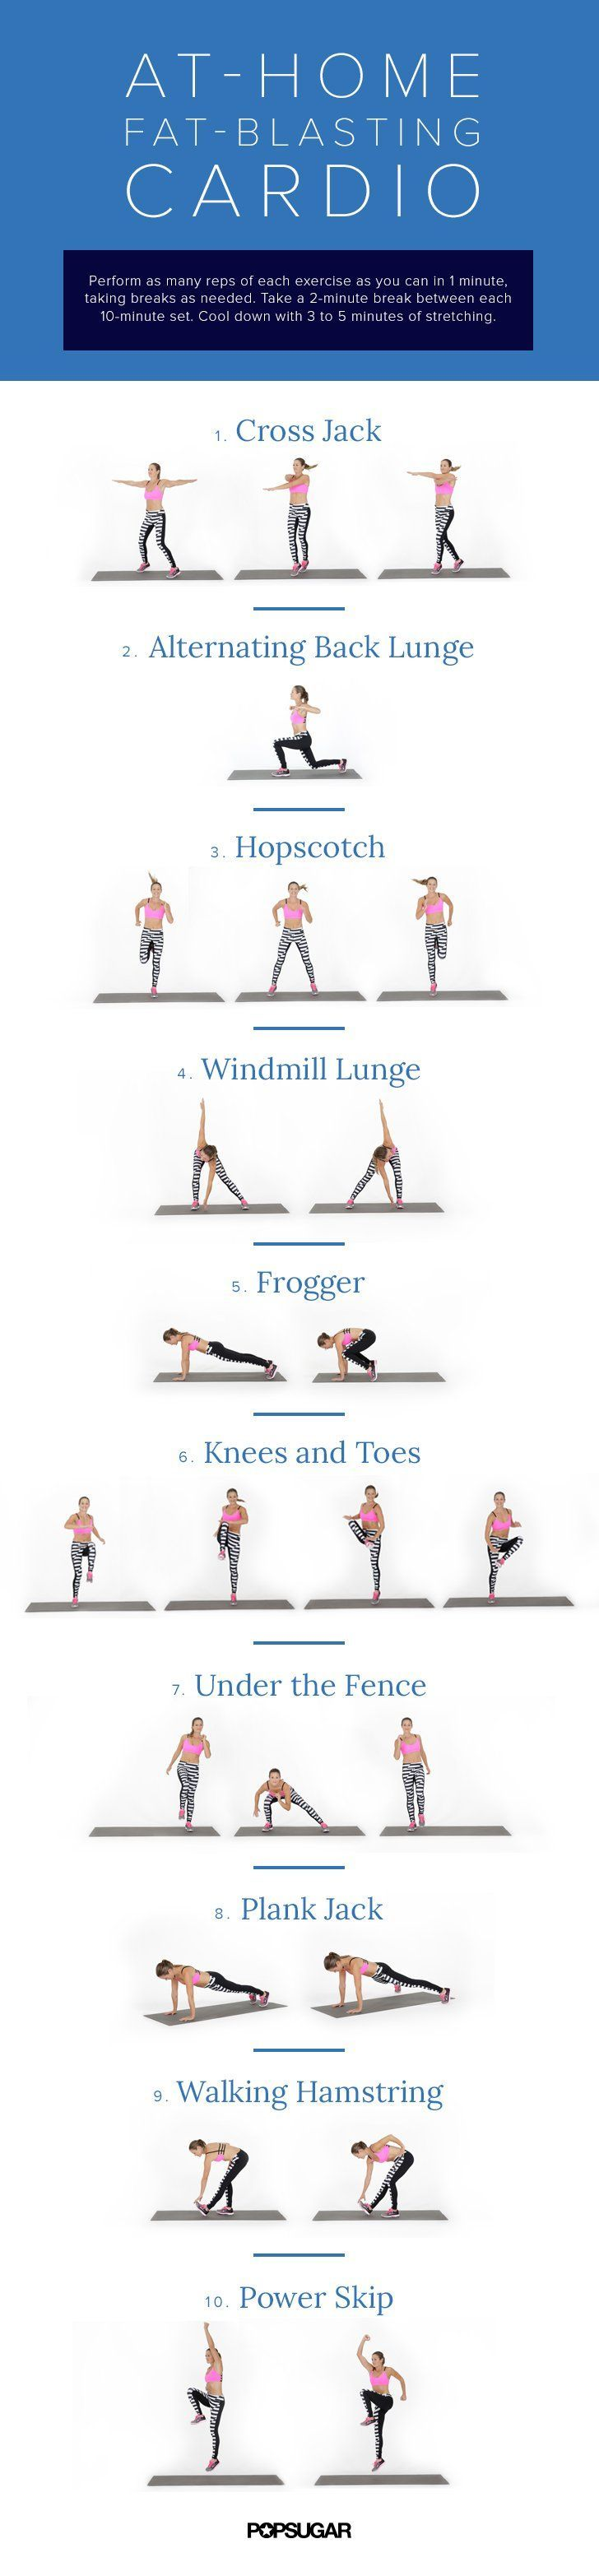 200 best At Home Cardio images on Pinterest | Exercise workouts ...